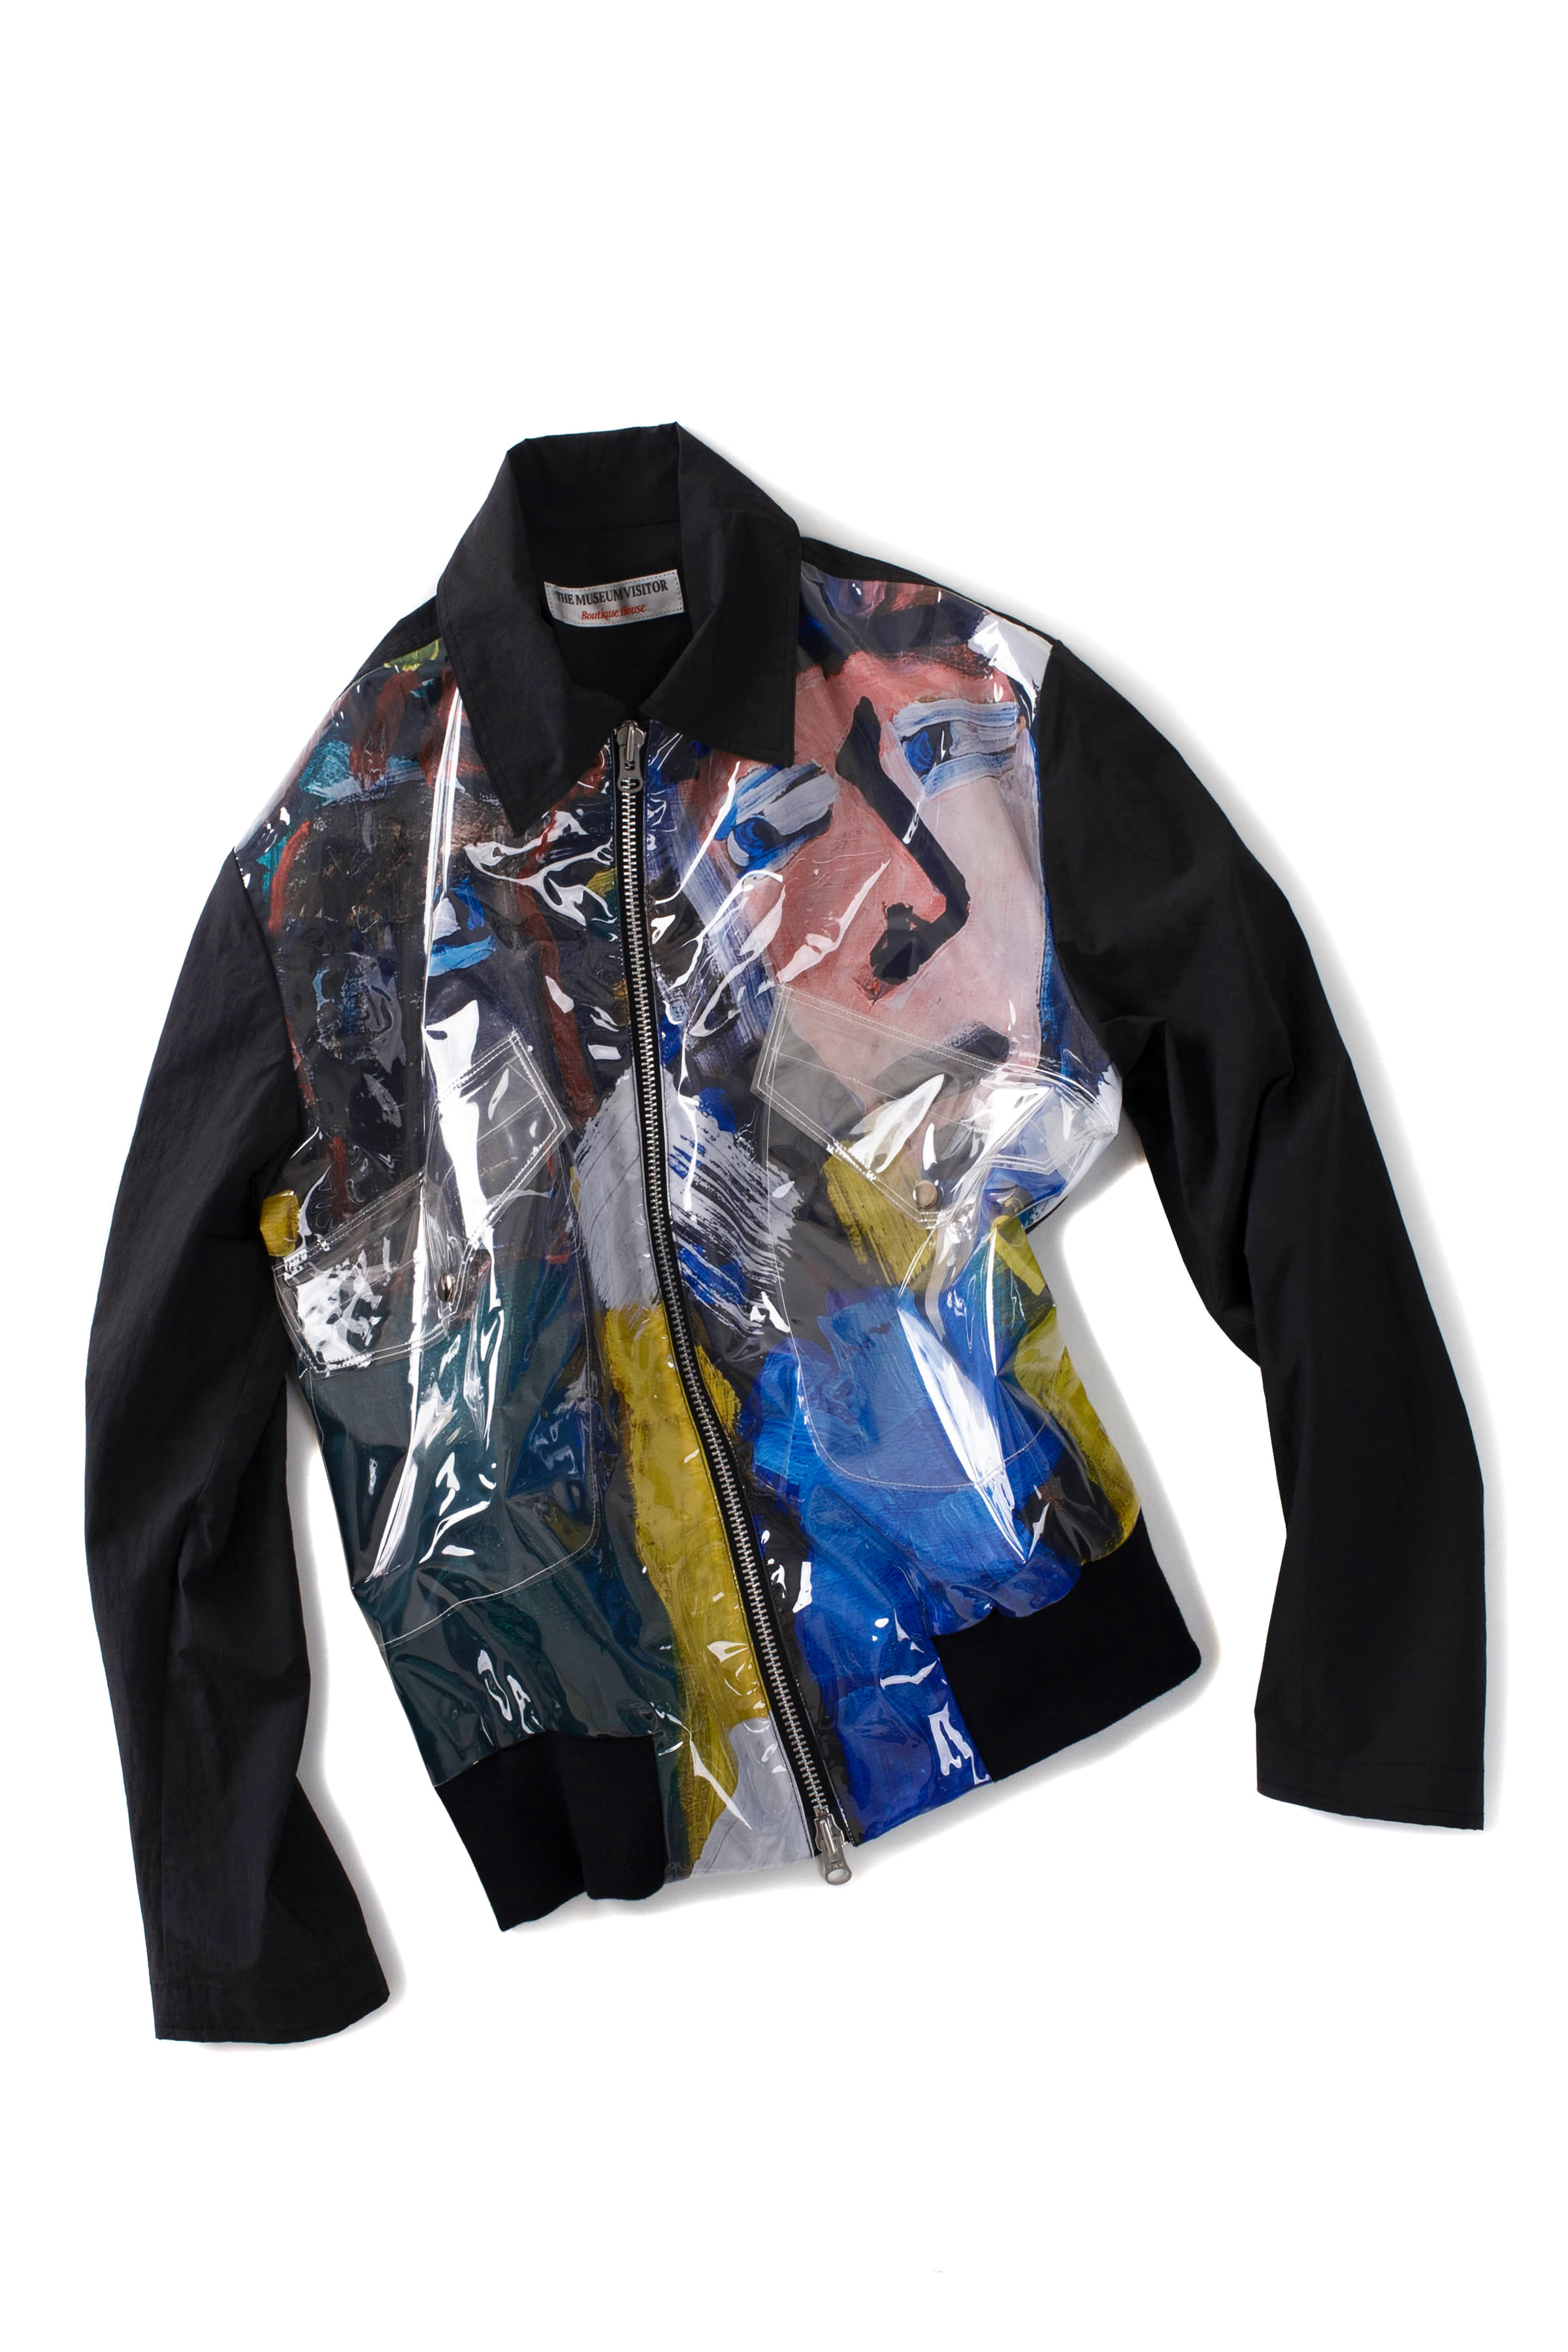 THE MUSEUM VISITOR : Graphic Blouson 13 (Black)